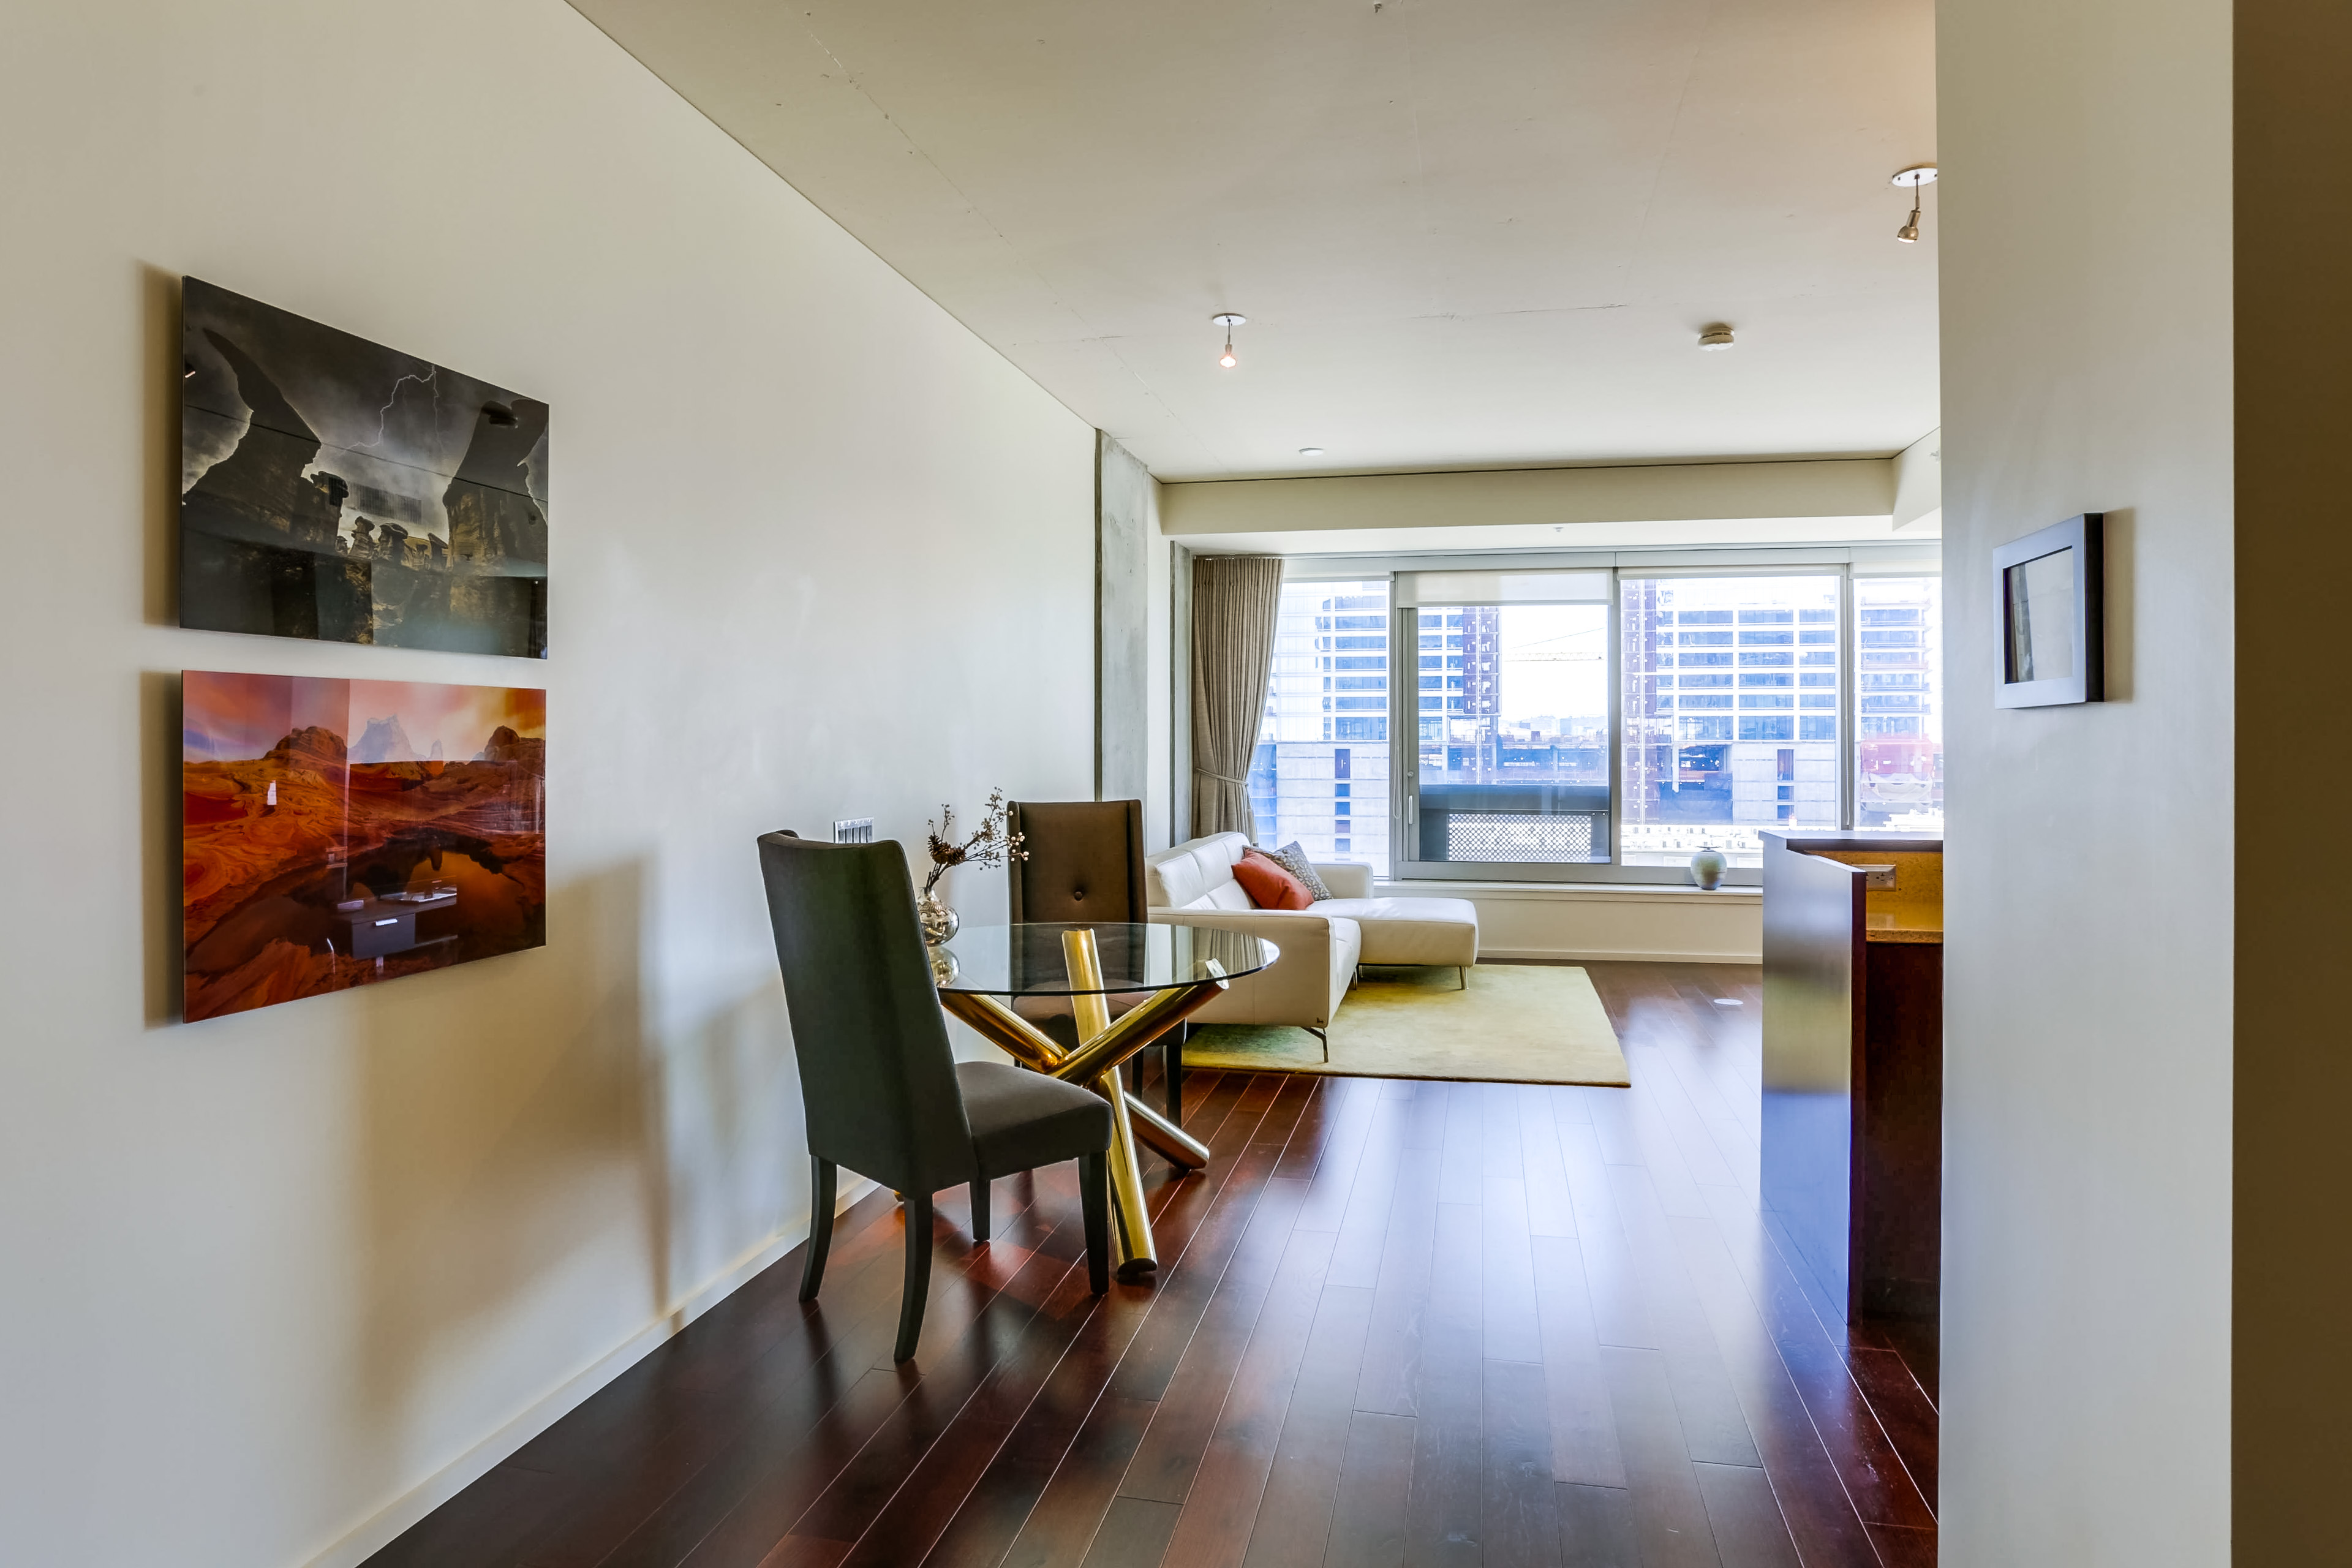 1155-s-grand-ave-1014-006